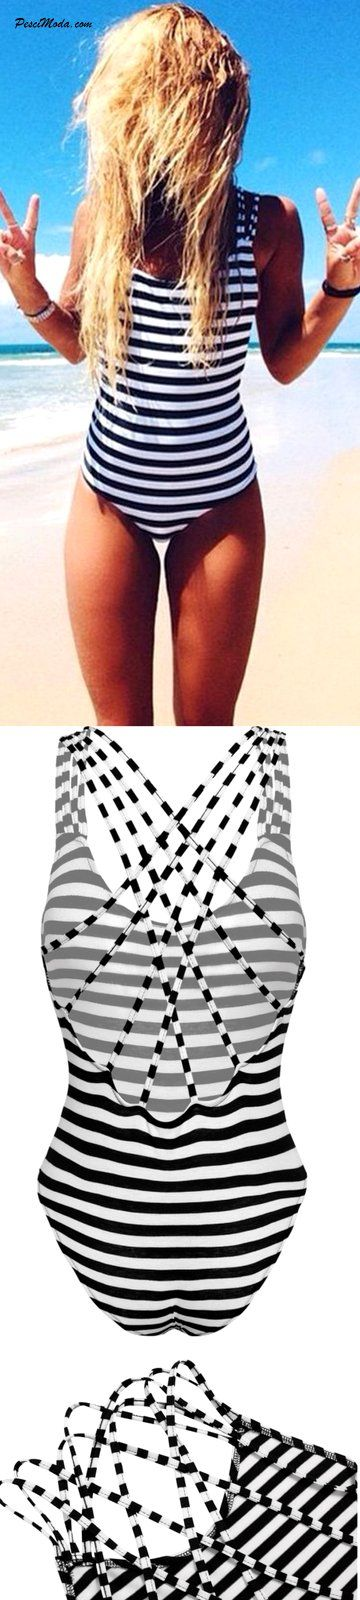 Black and White Striped One Piece Swimsuit $17.99 Only. #Summer #BeachWear…